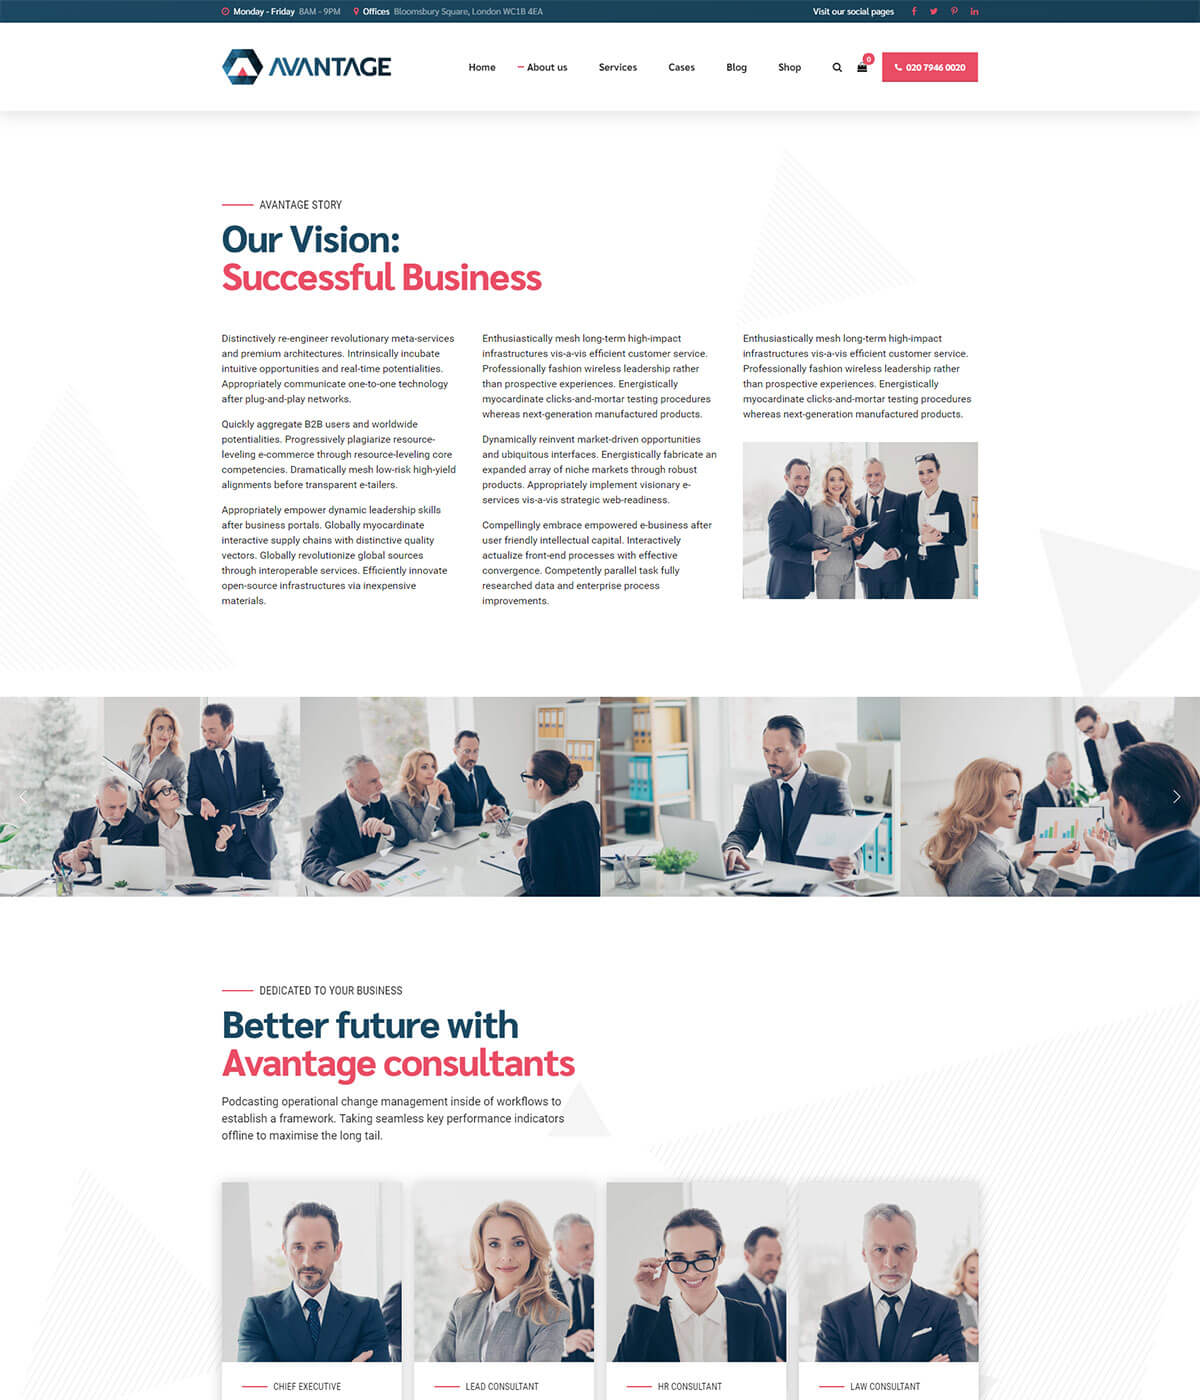 https://avantage.bold-themes.com/wp-content/uploads/2019/05/business-01-about-us.jpg